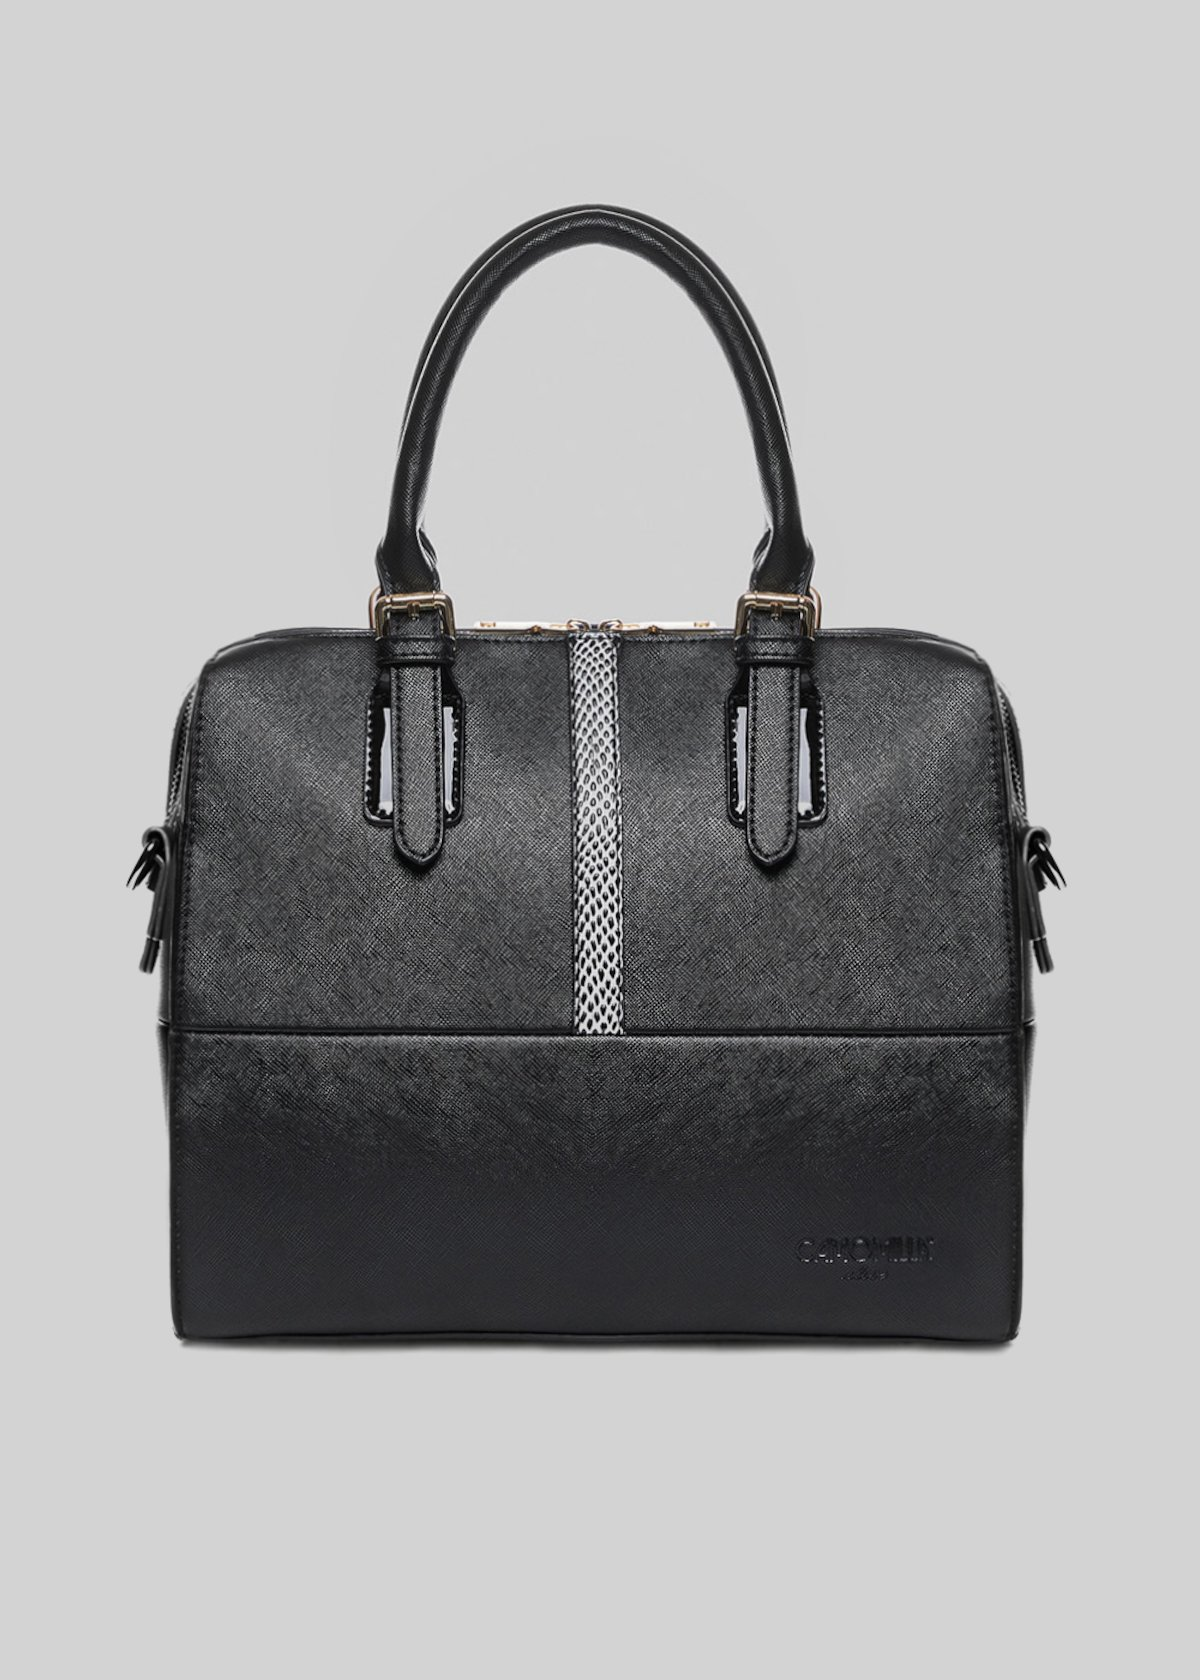 Bag With Patent Inserts Python And Removable Chain Shoulder Strap Black